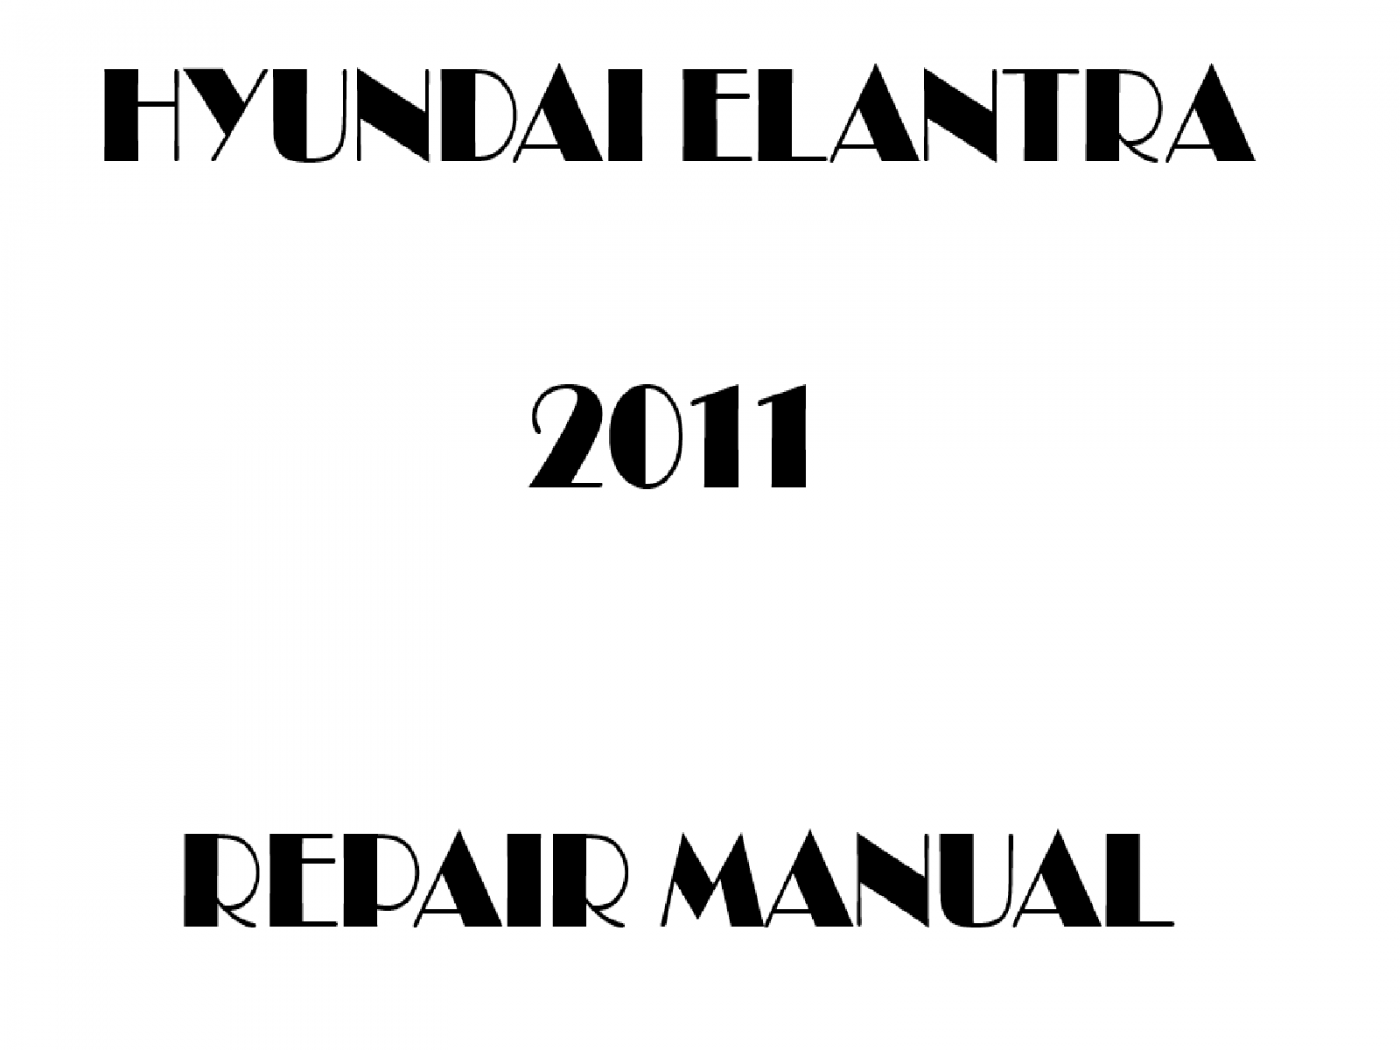 2011 Hyundai Elantra repair manual